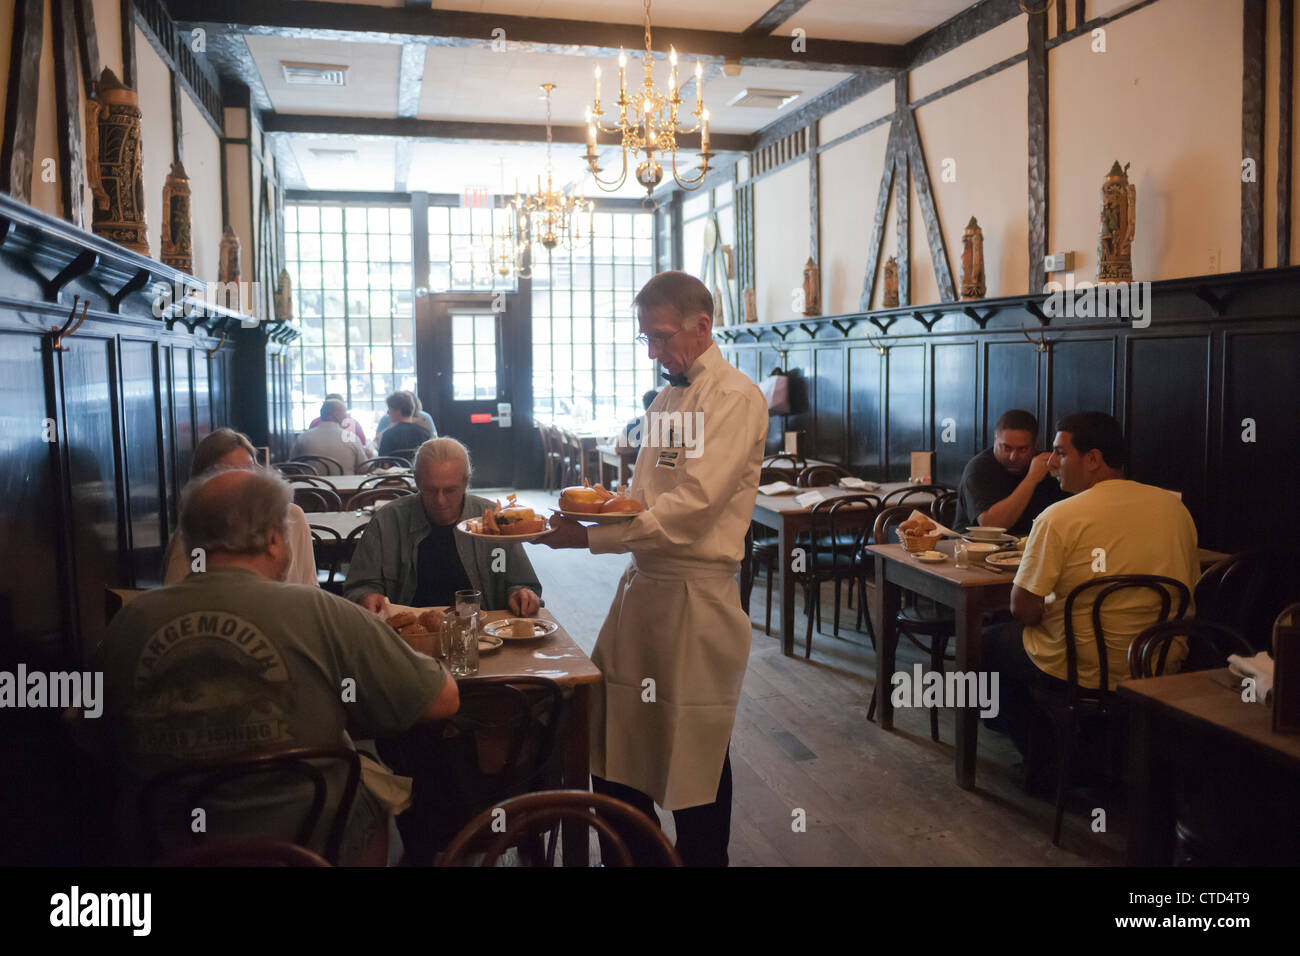 Peter Luger Steak House in Williamsburg, Brooklyn in New York Stock Photo